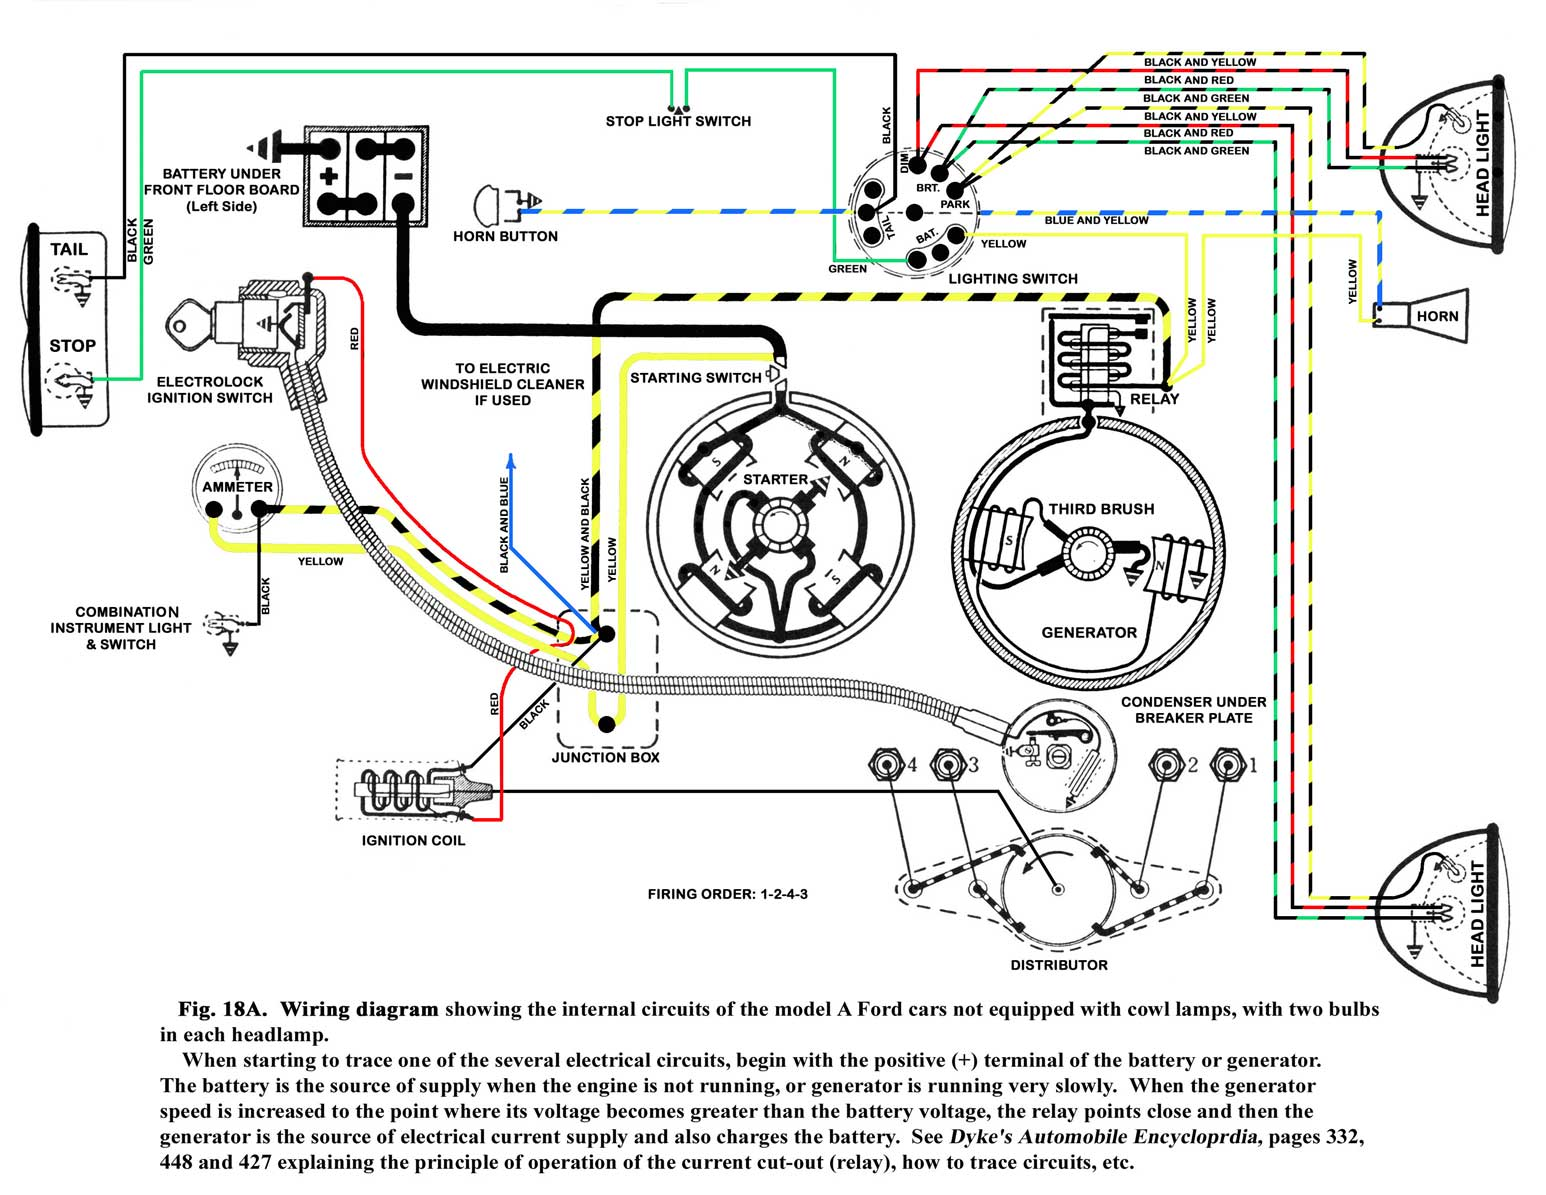 Ford Wiring Diagrams - Wiring Diagram Detailed on bmw wiring diagrams online, flstc wiring diagram online, harley 1968 xlch wiring-diagram, honda wiring diagrams online, harley parts online, ford wiring diagrams online, harley wiring diagrams pdf,